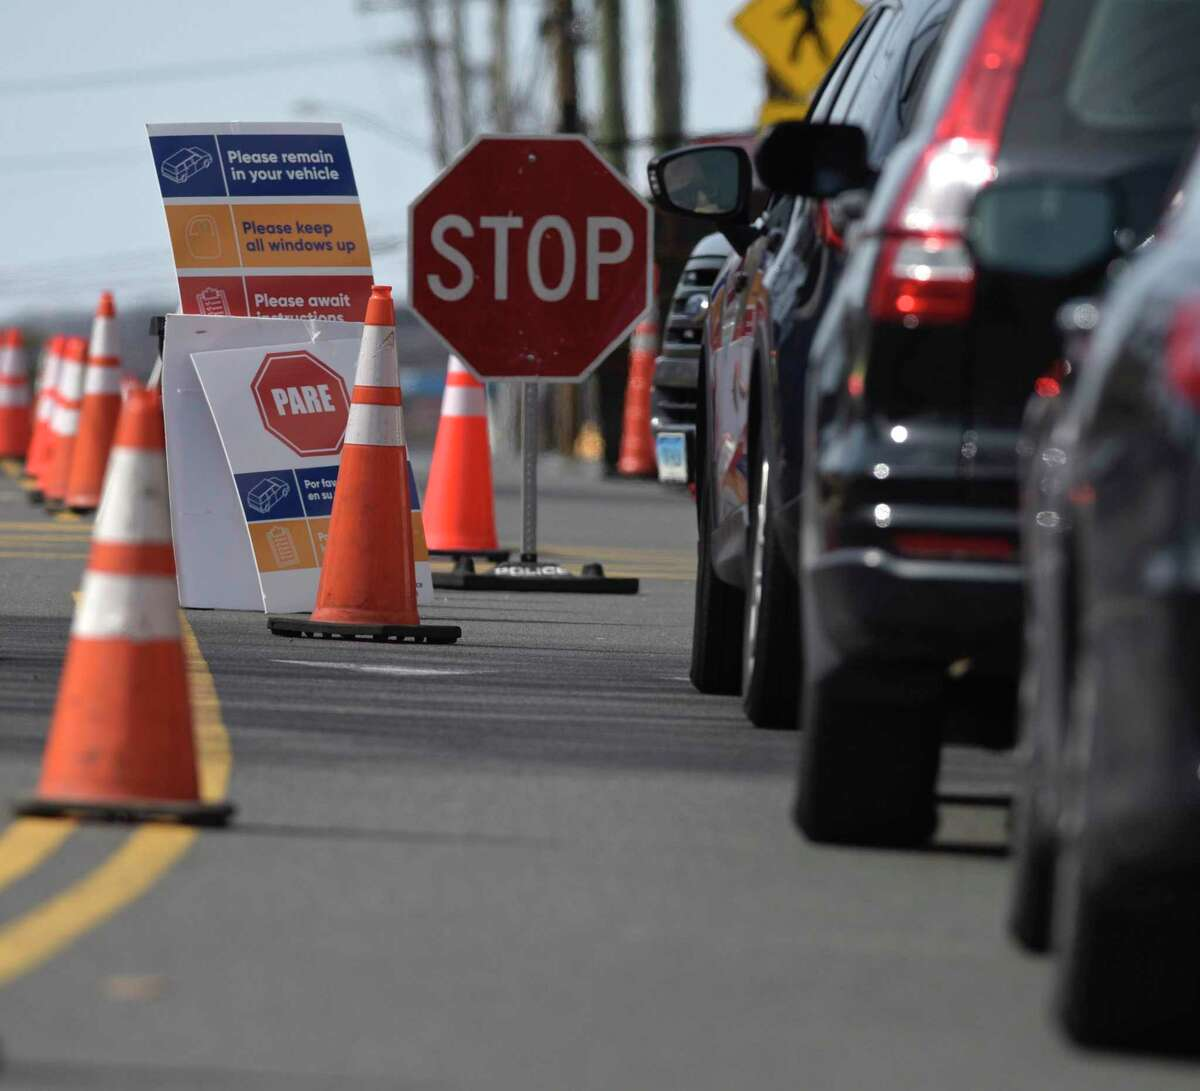 Cars wait in line at a drive-thru testing site for the respiratory virus known as COVID-19 that has been setup in one of Danbury Hospitals parking garages. The Danbury Police Department is controlling the flow of traffic to the street. Wednesday, March 18, 2020, in Danbury, Conn.